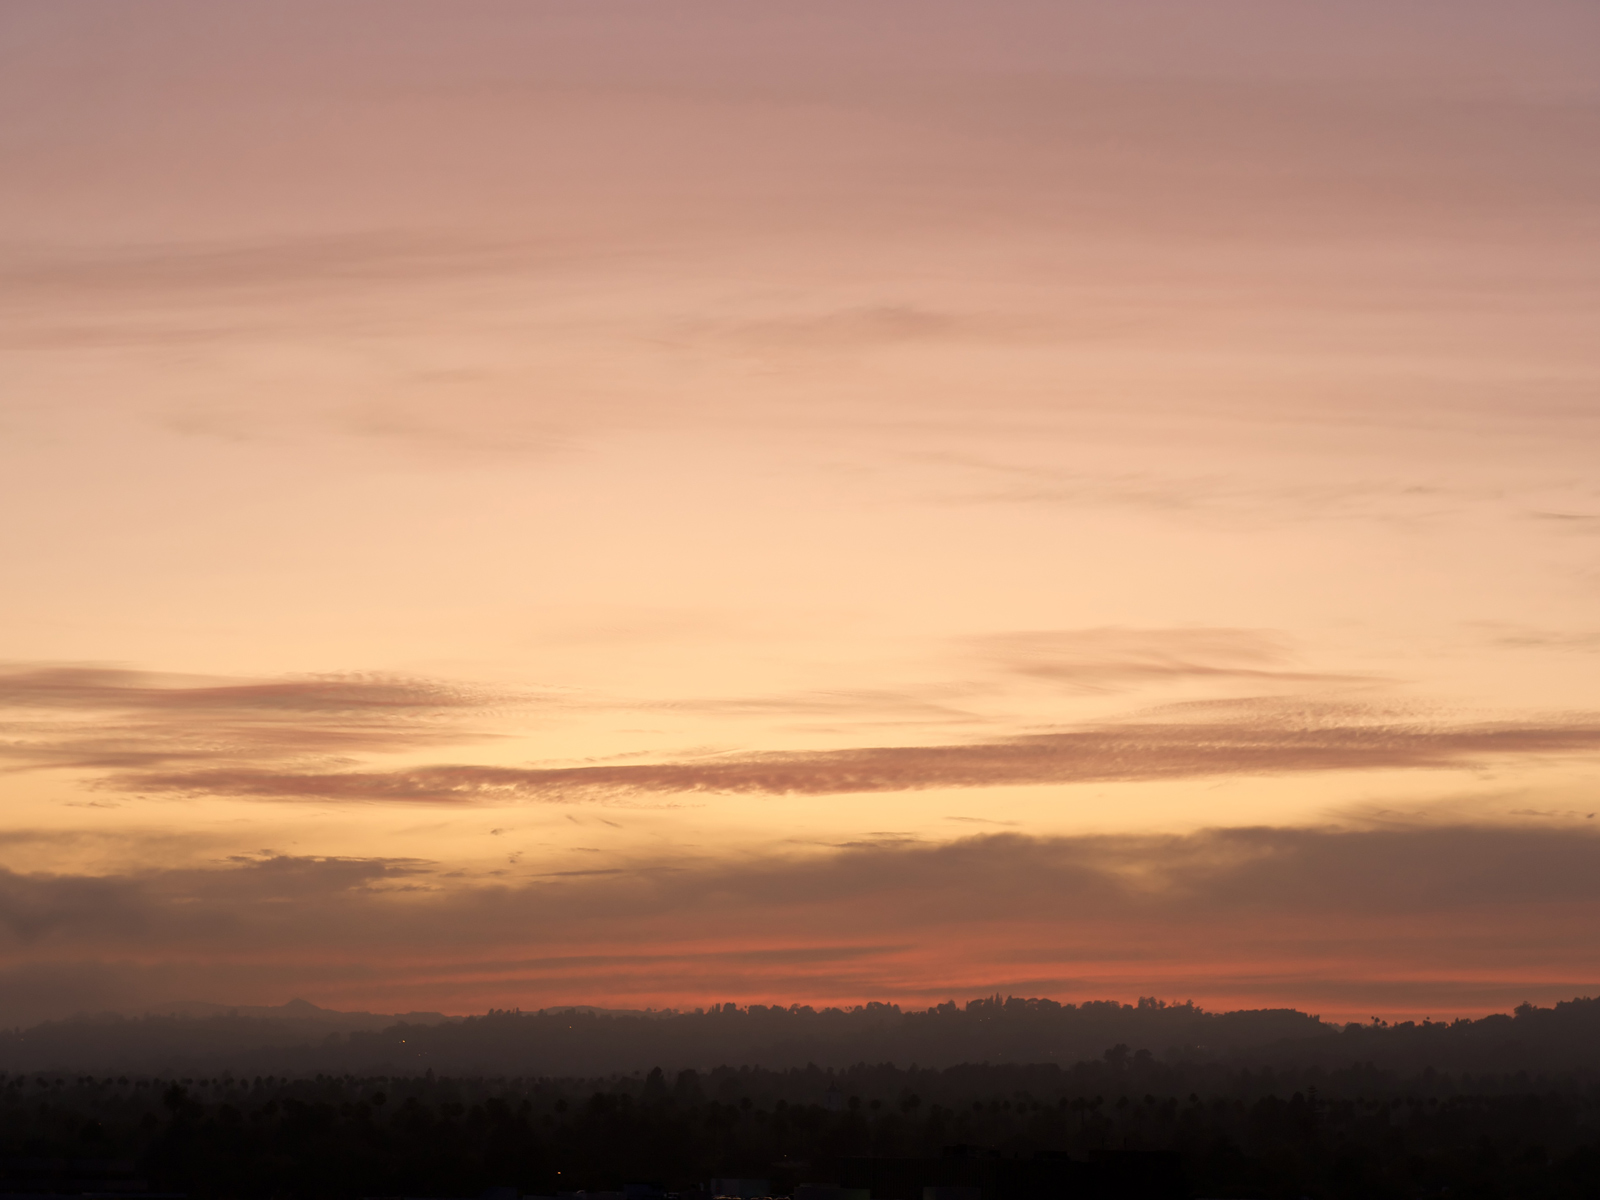 pink sunset over the skyline of Los Angeles, Caliornia, USA